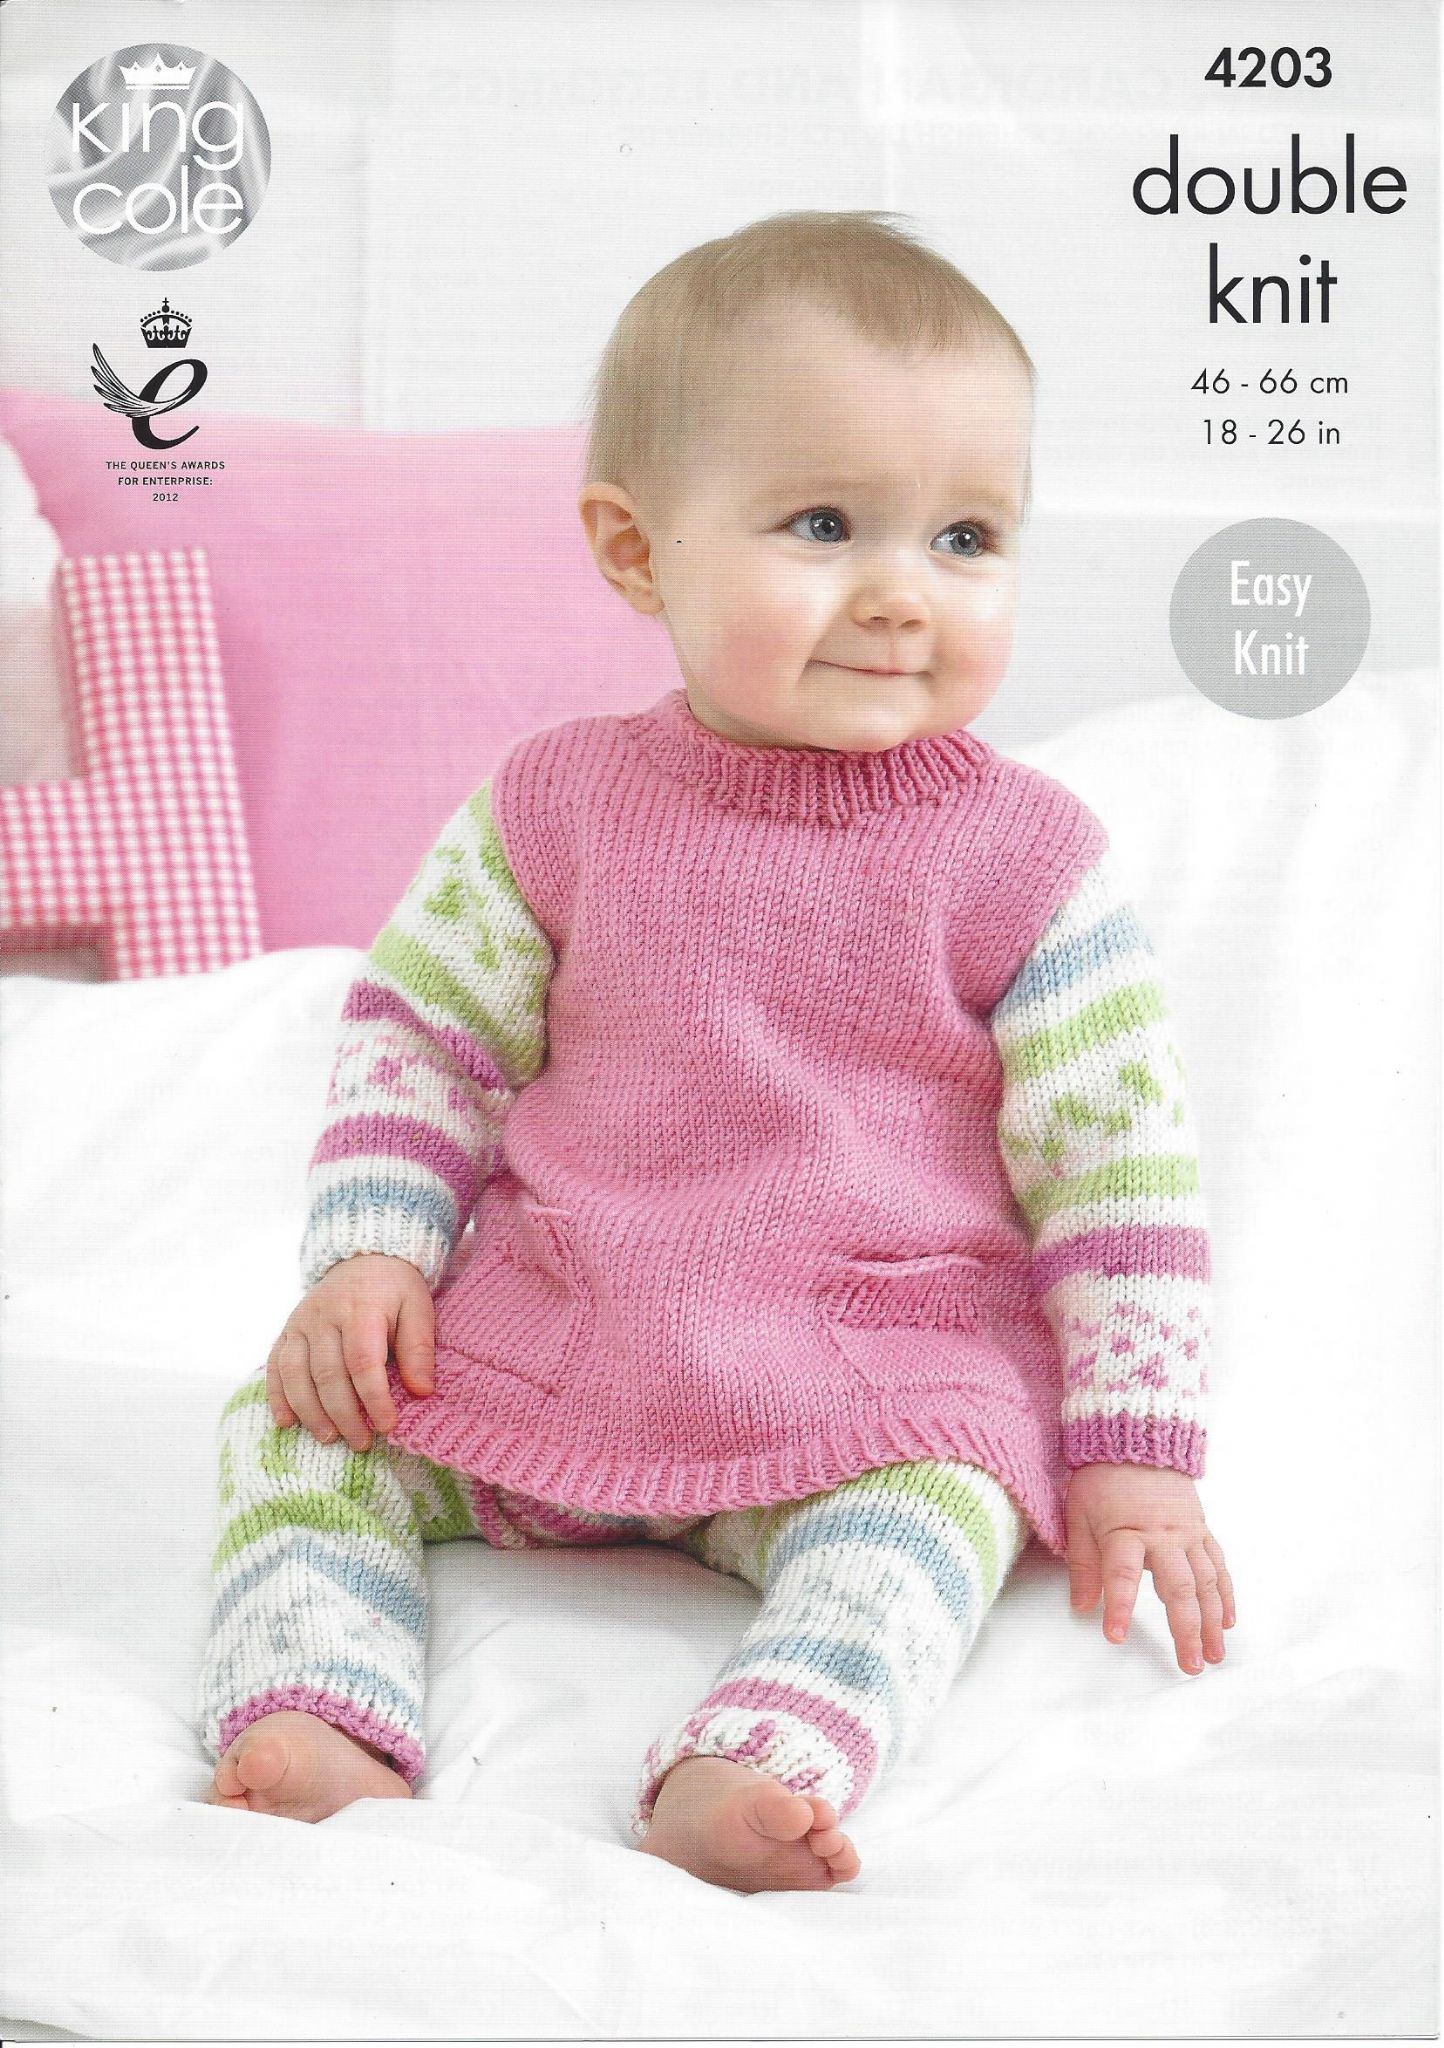 King cole baby dk knitting pattern 4203 tunic cardigan leggings bankloansurffo Image collections